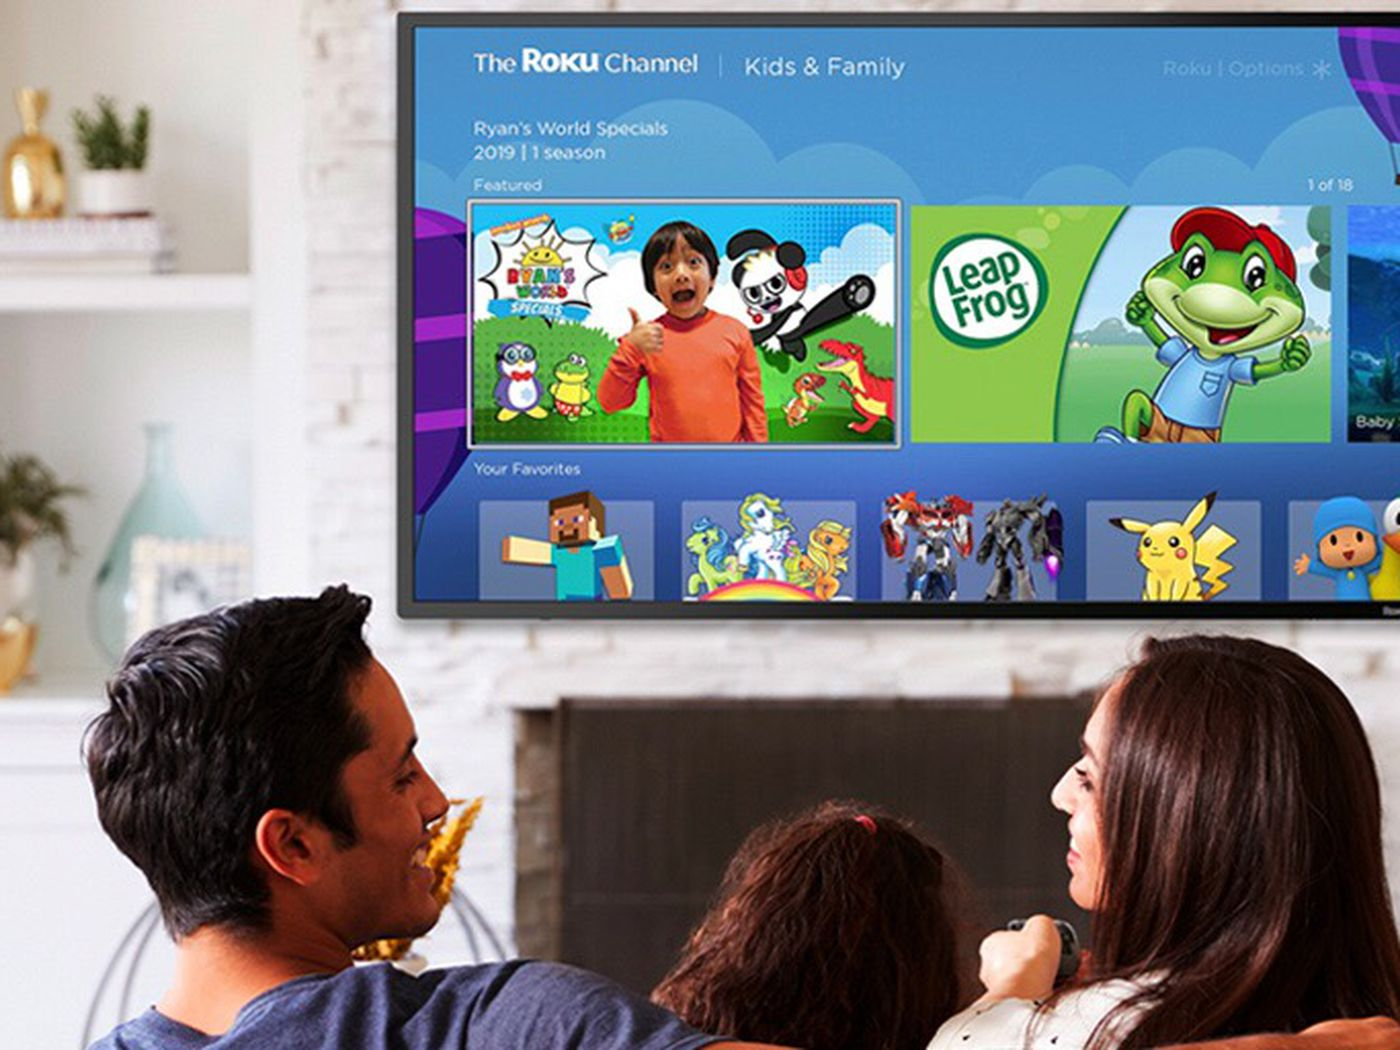 Best Free Roku Channels 2020.The Roku Channel Is Adding A Kids And Family Section With